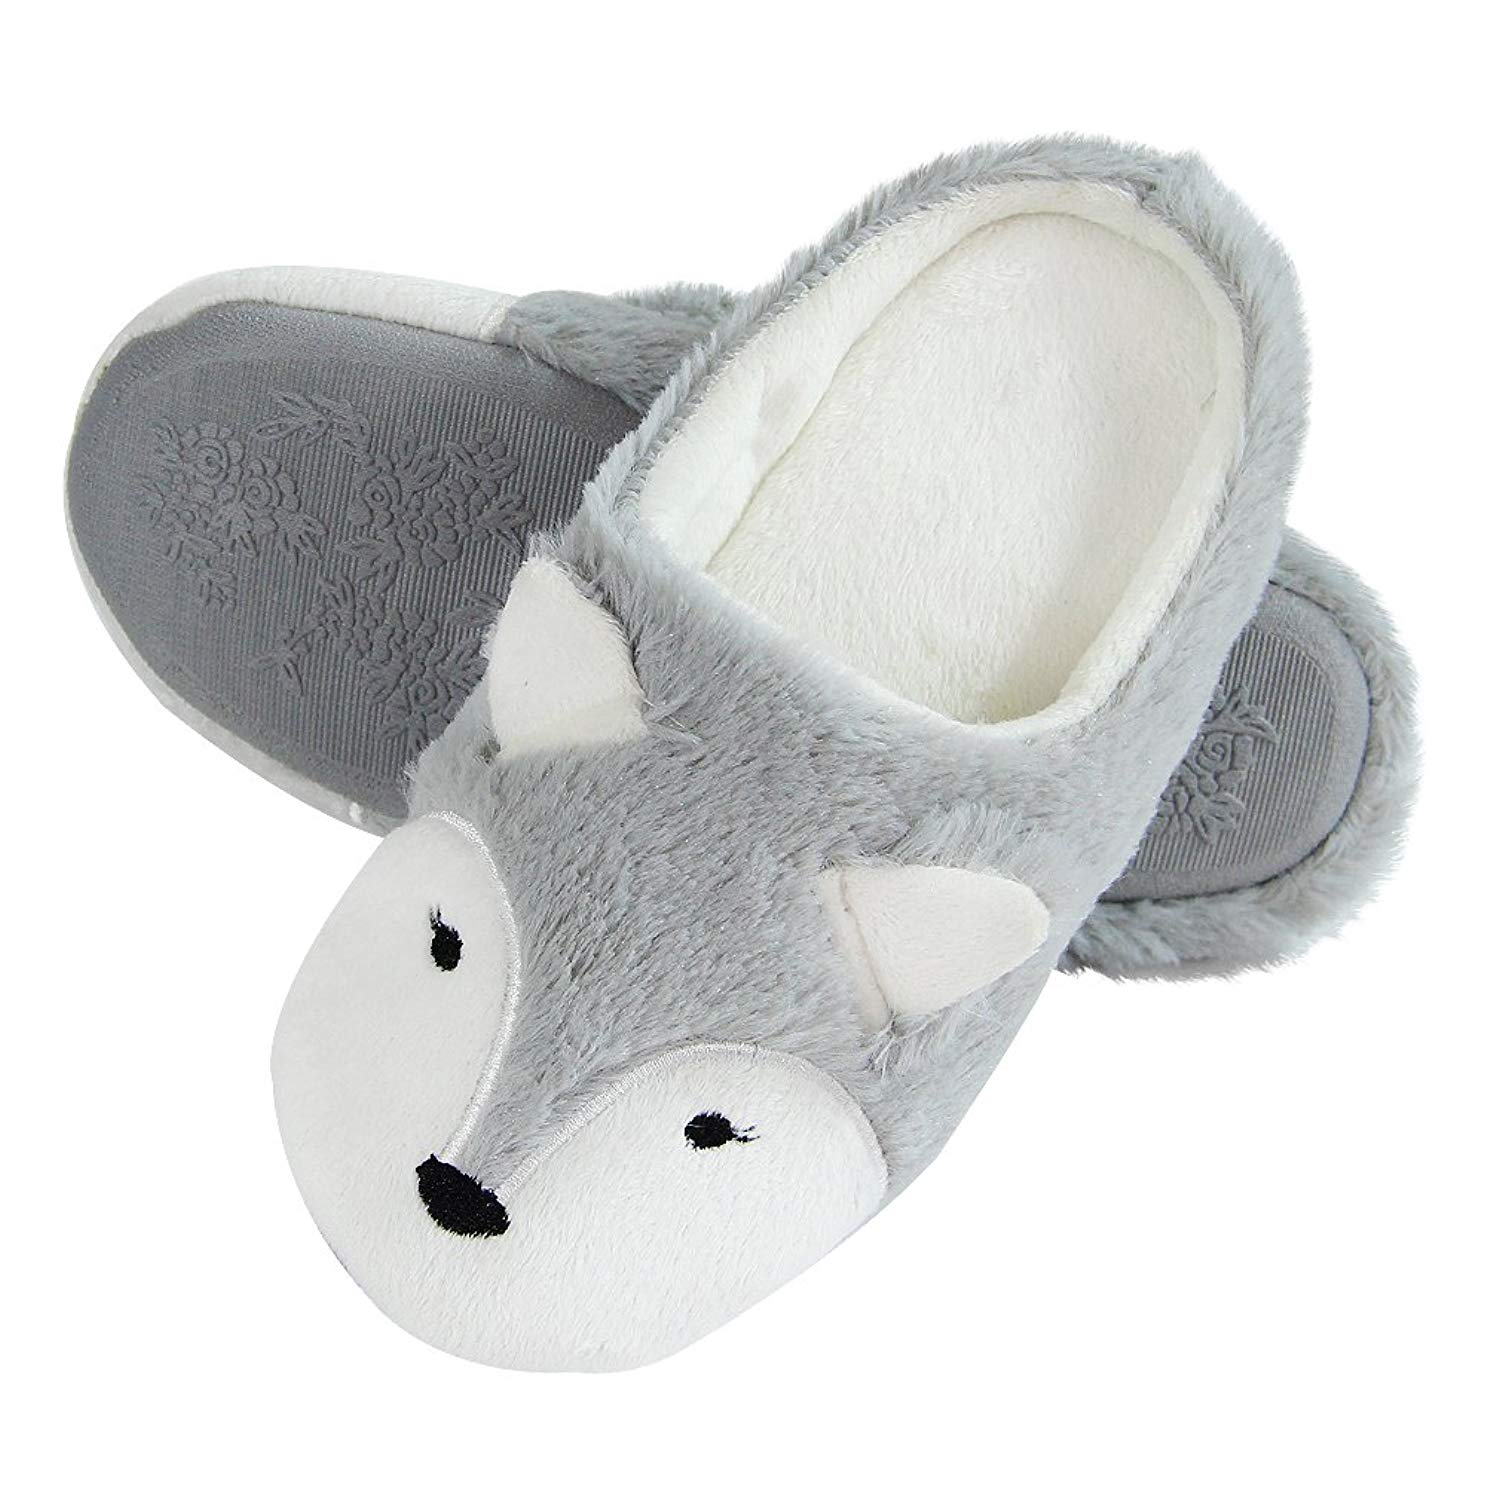 69738ef407d Get Quotations · Fox Cute Animal Slippers Low